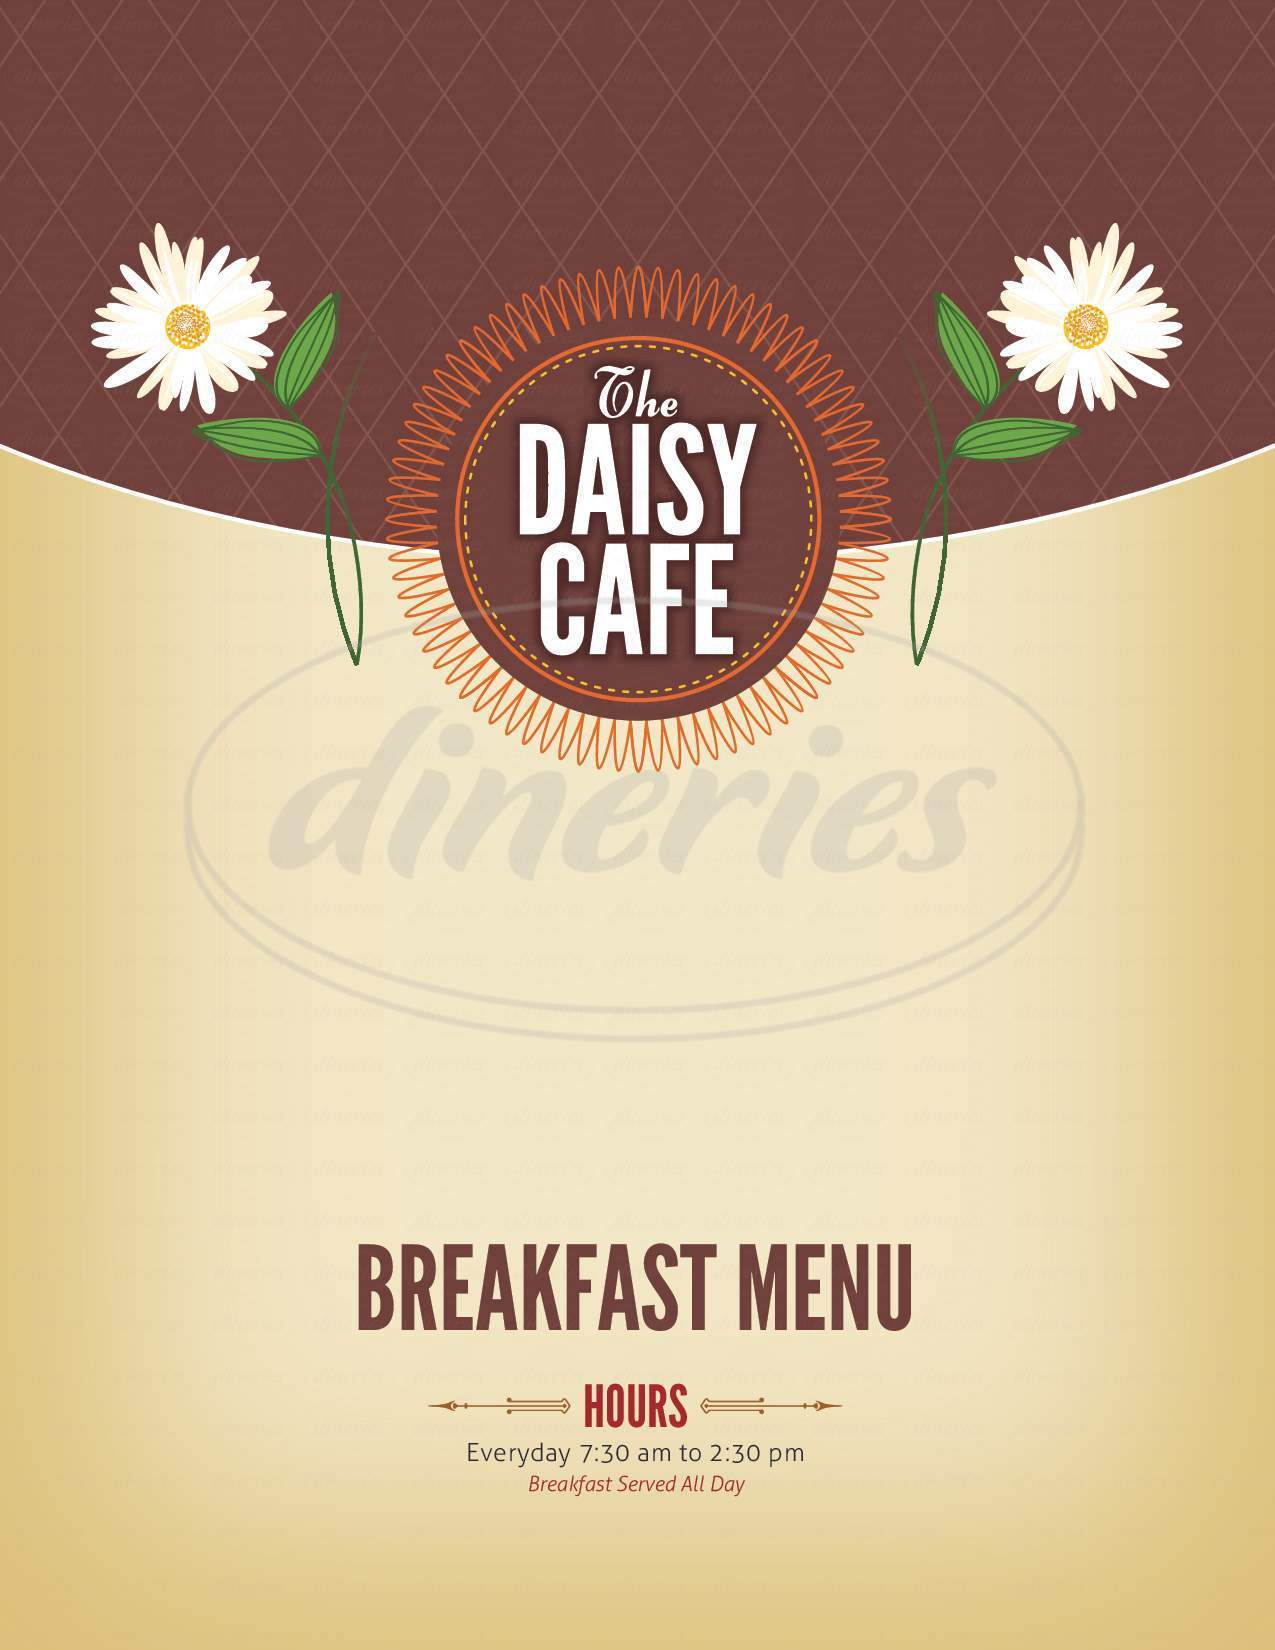 menu for The Daisy Cafe